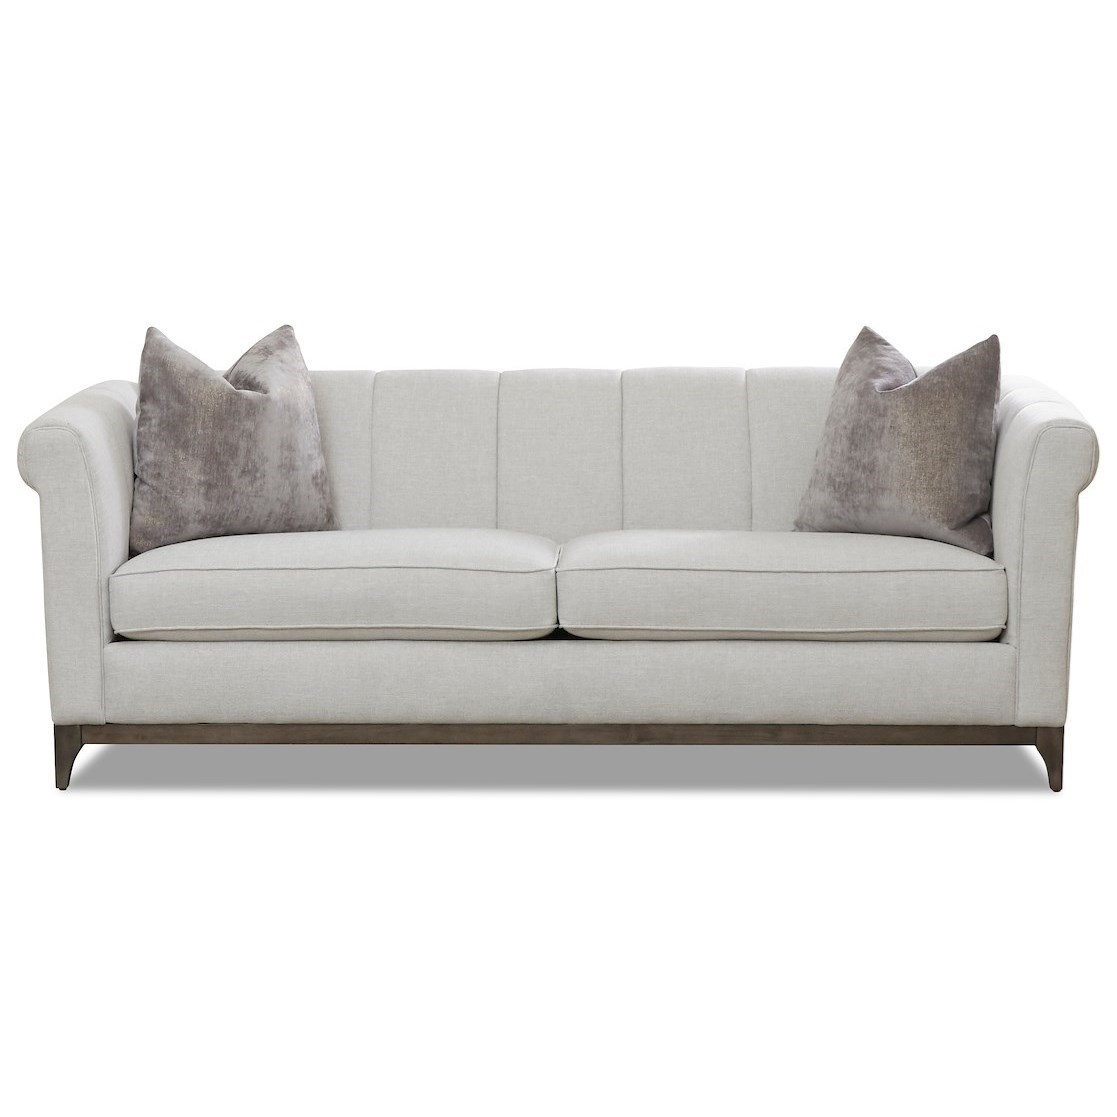 Klaussner Nigel Contemporary Tuxedo Sofa With Channel Back And Wood Base Value City Furniture Sofas